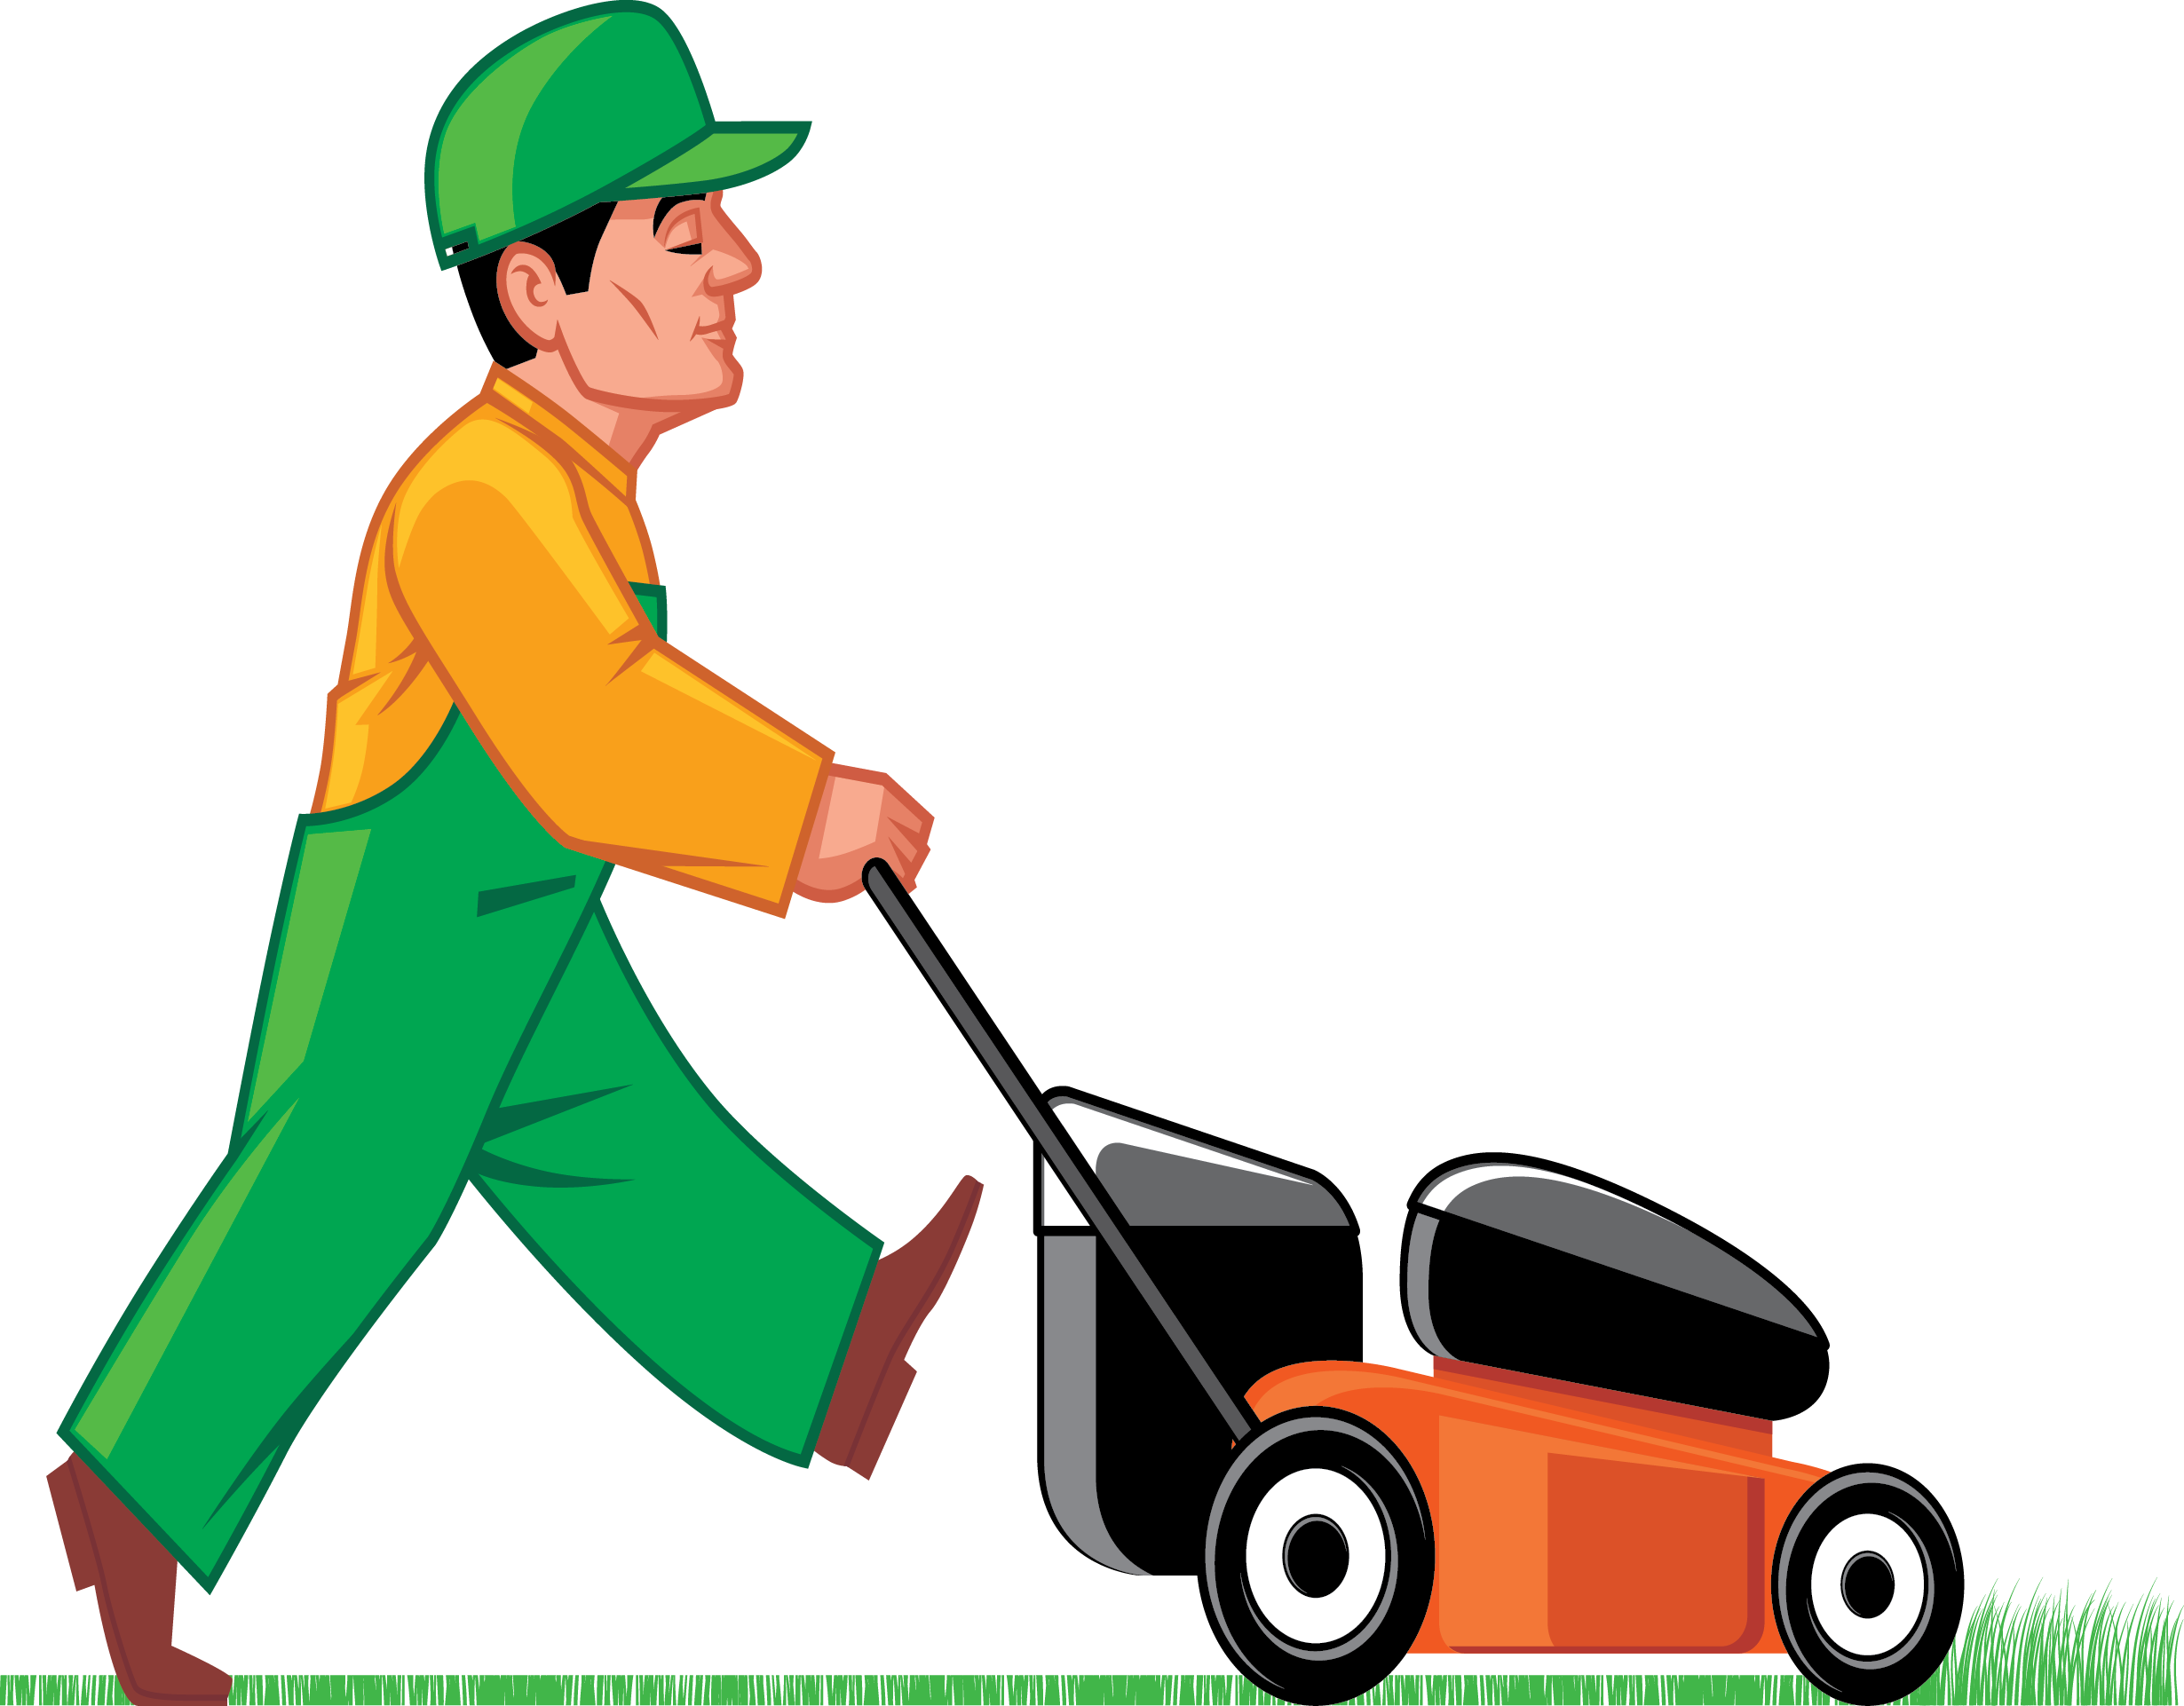 svg free download In case you do. Lawn mower clipart grounds maintenance.